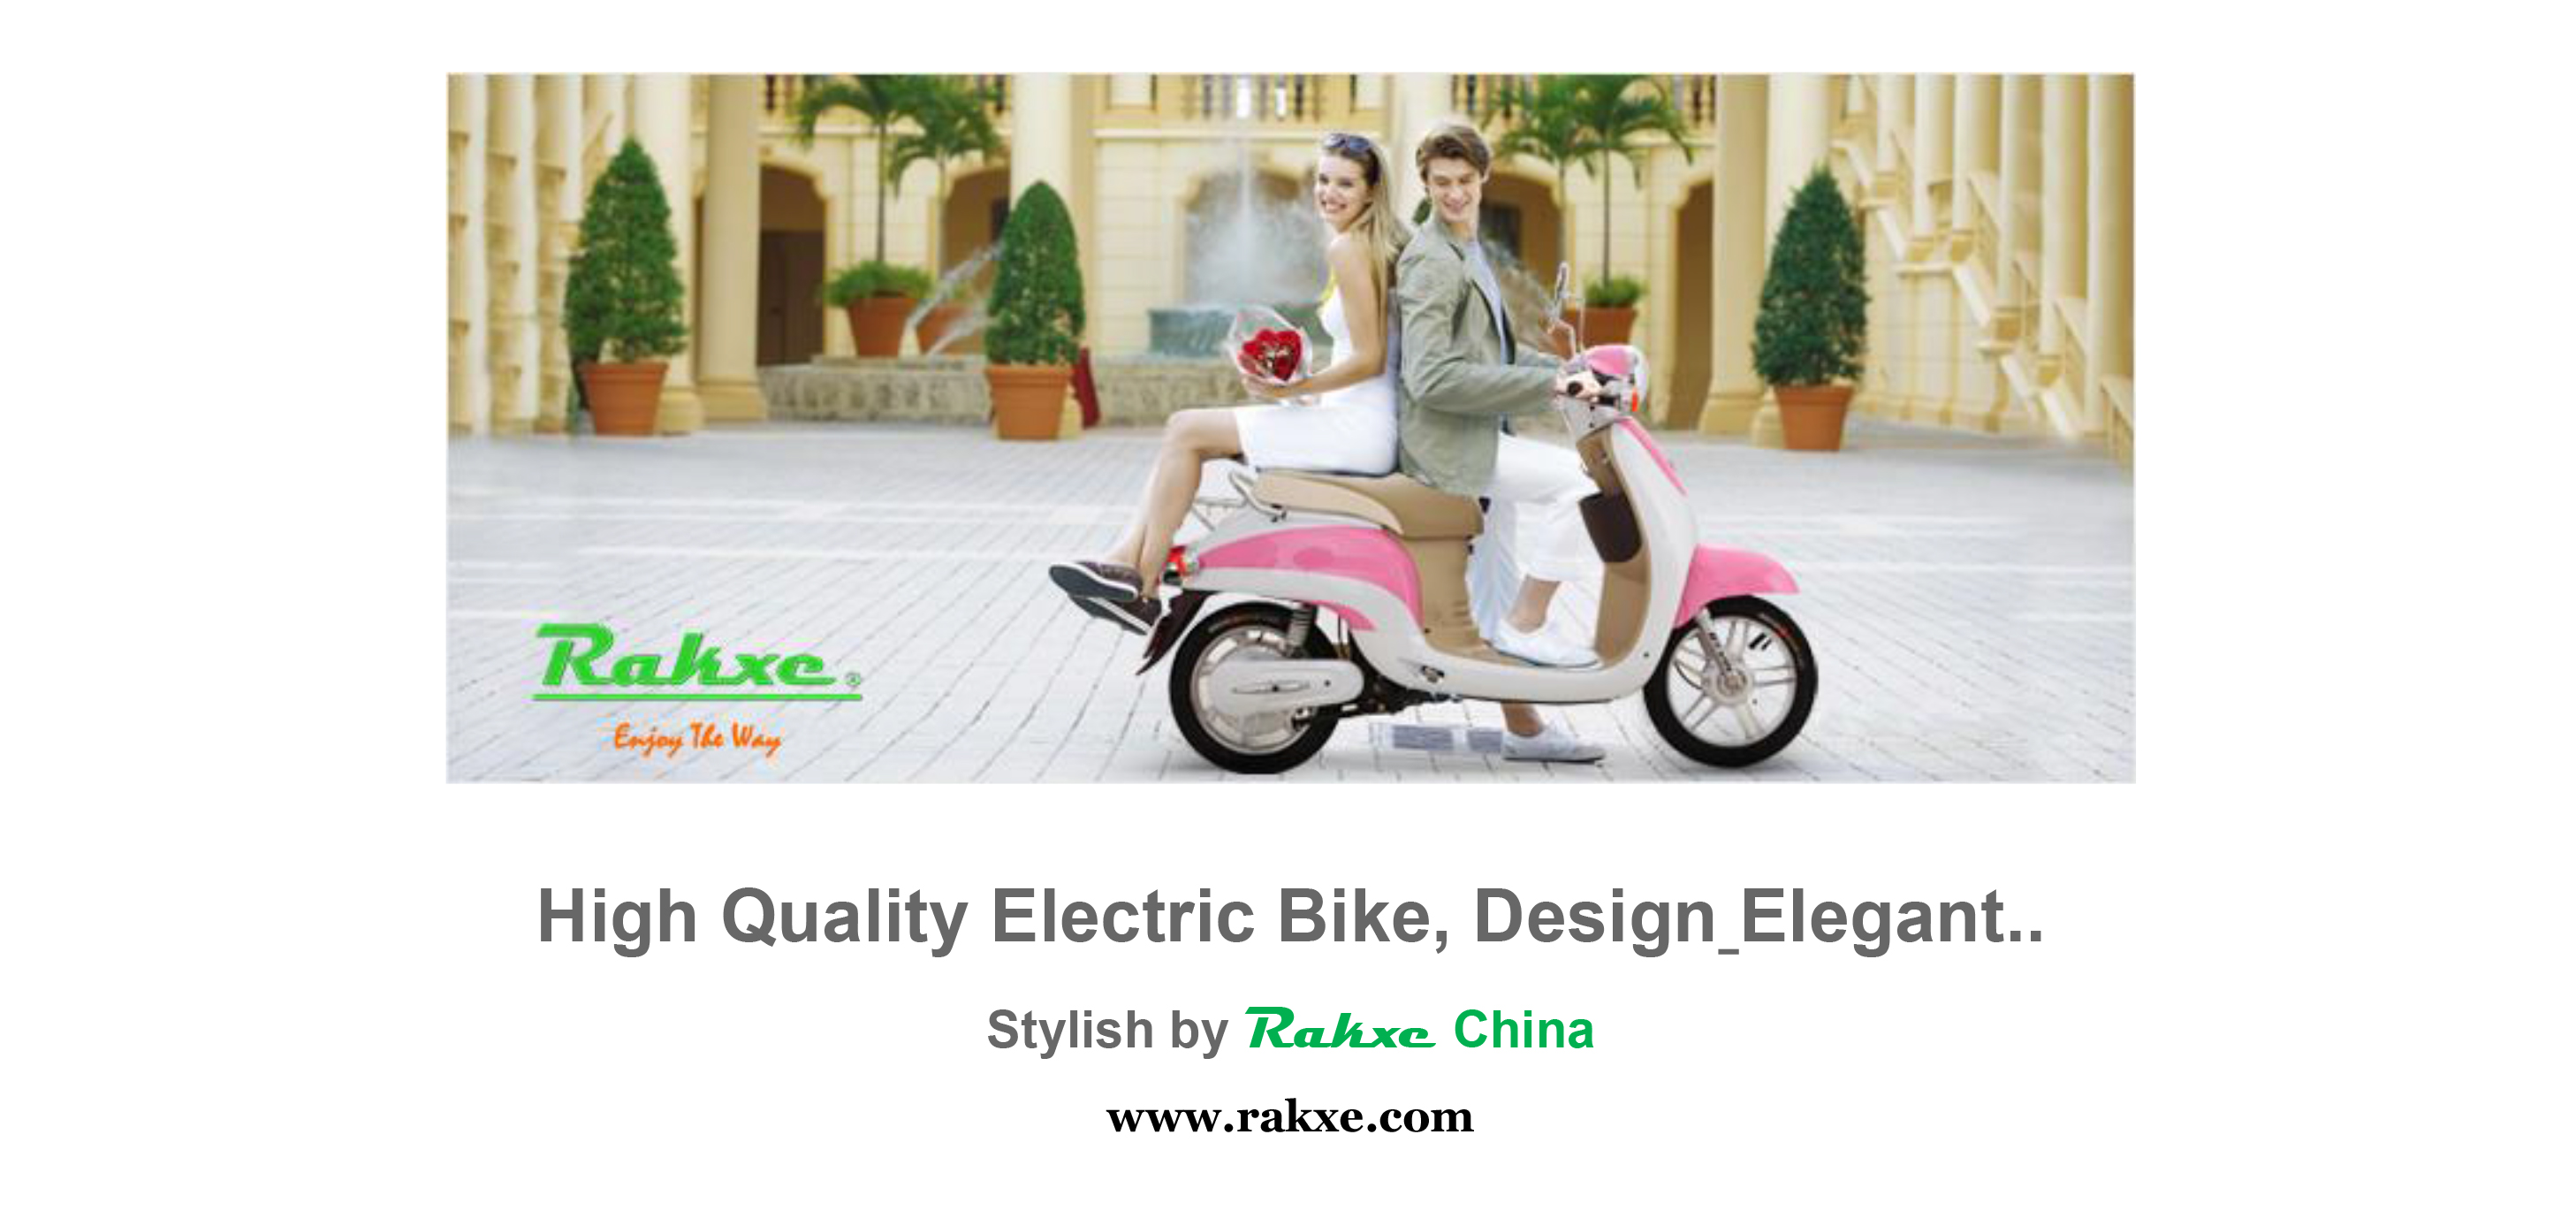 Offerring Electric Scooter, Electric Bike, Electric Bicycle, Electric Motorcycle, Electric Vehicle